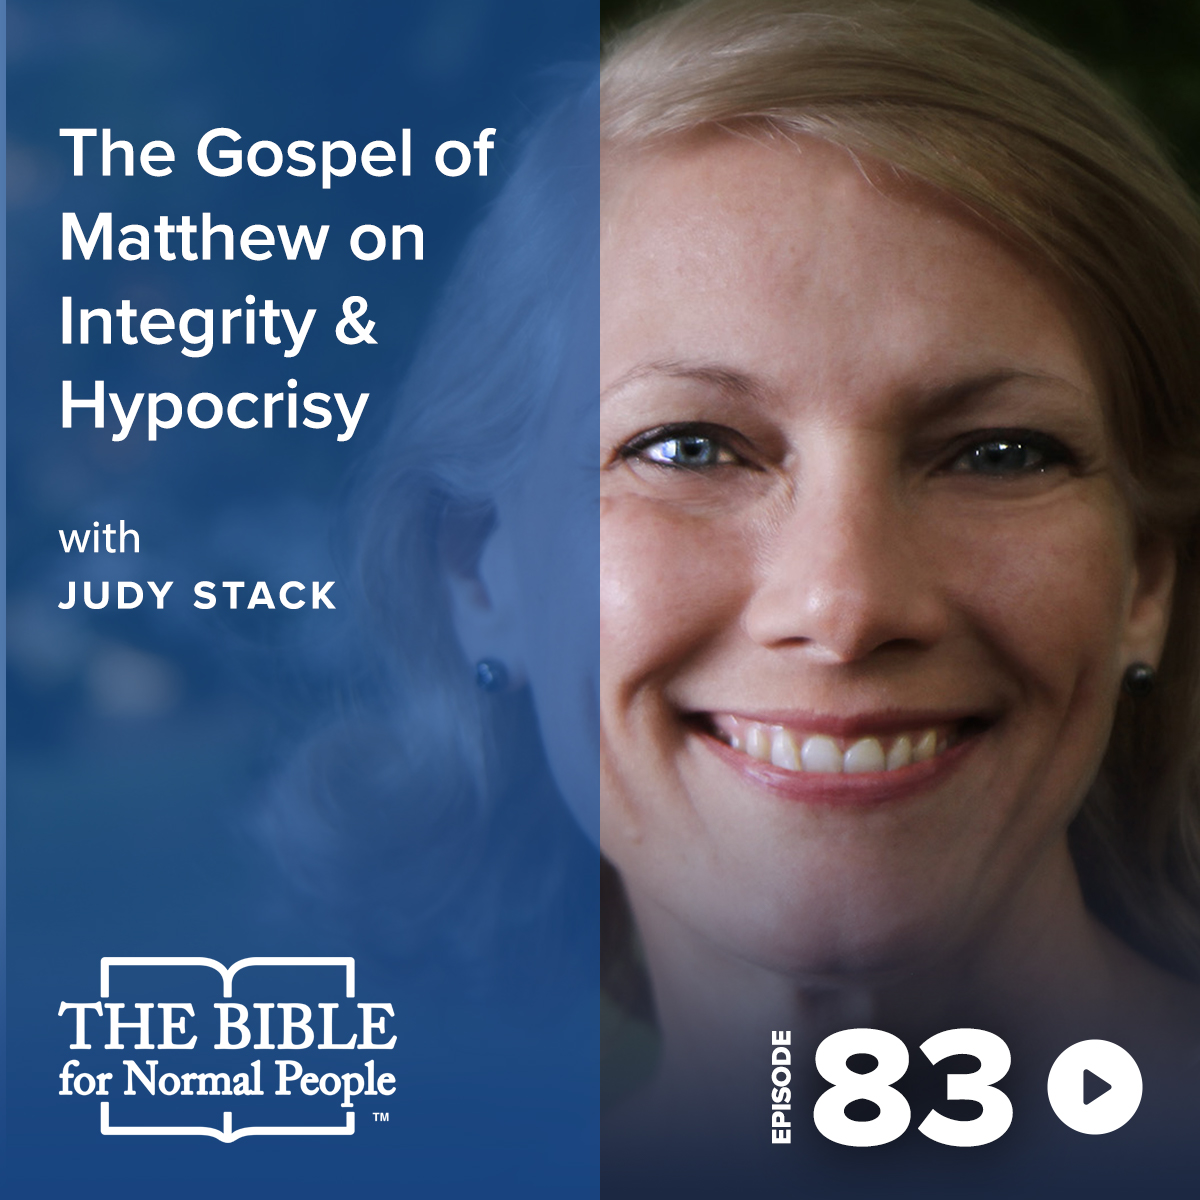 Episode 83: Judy Stack - The Gospel of Matthew on Integrity & Hypocrisy